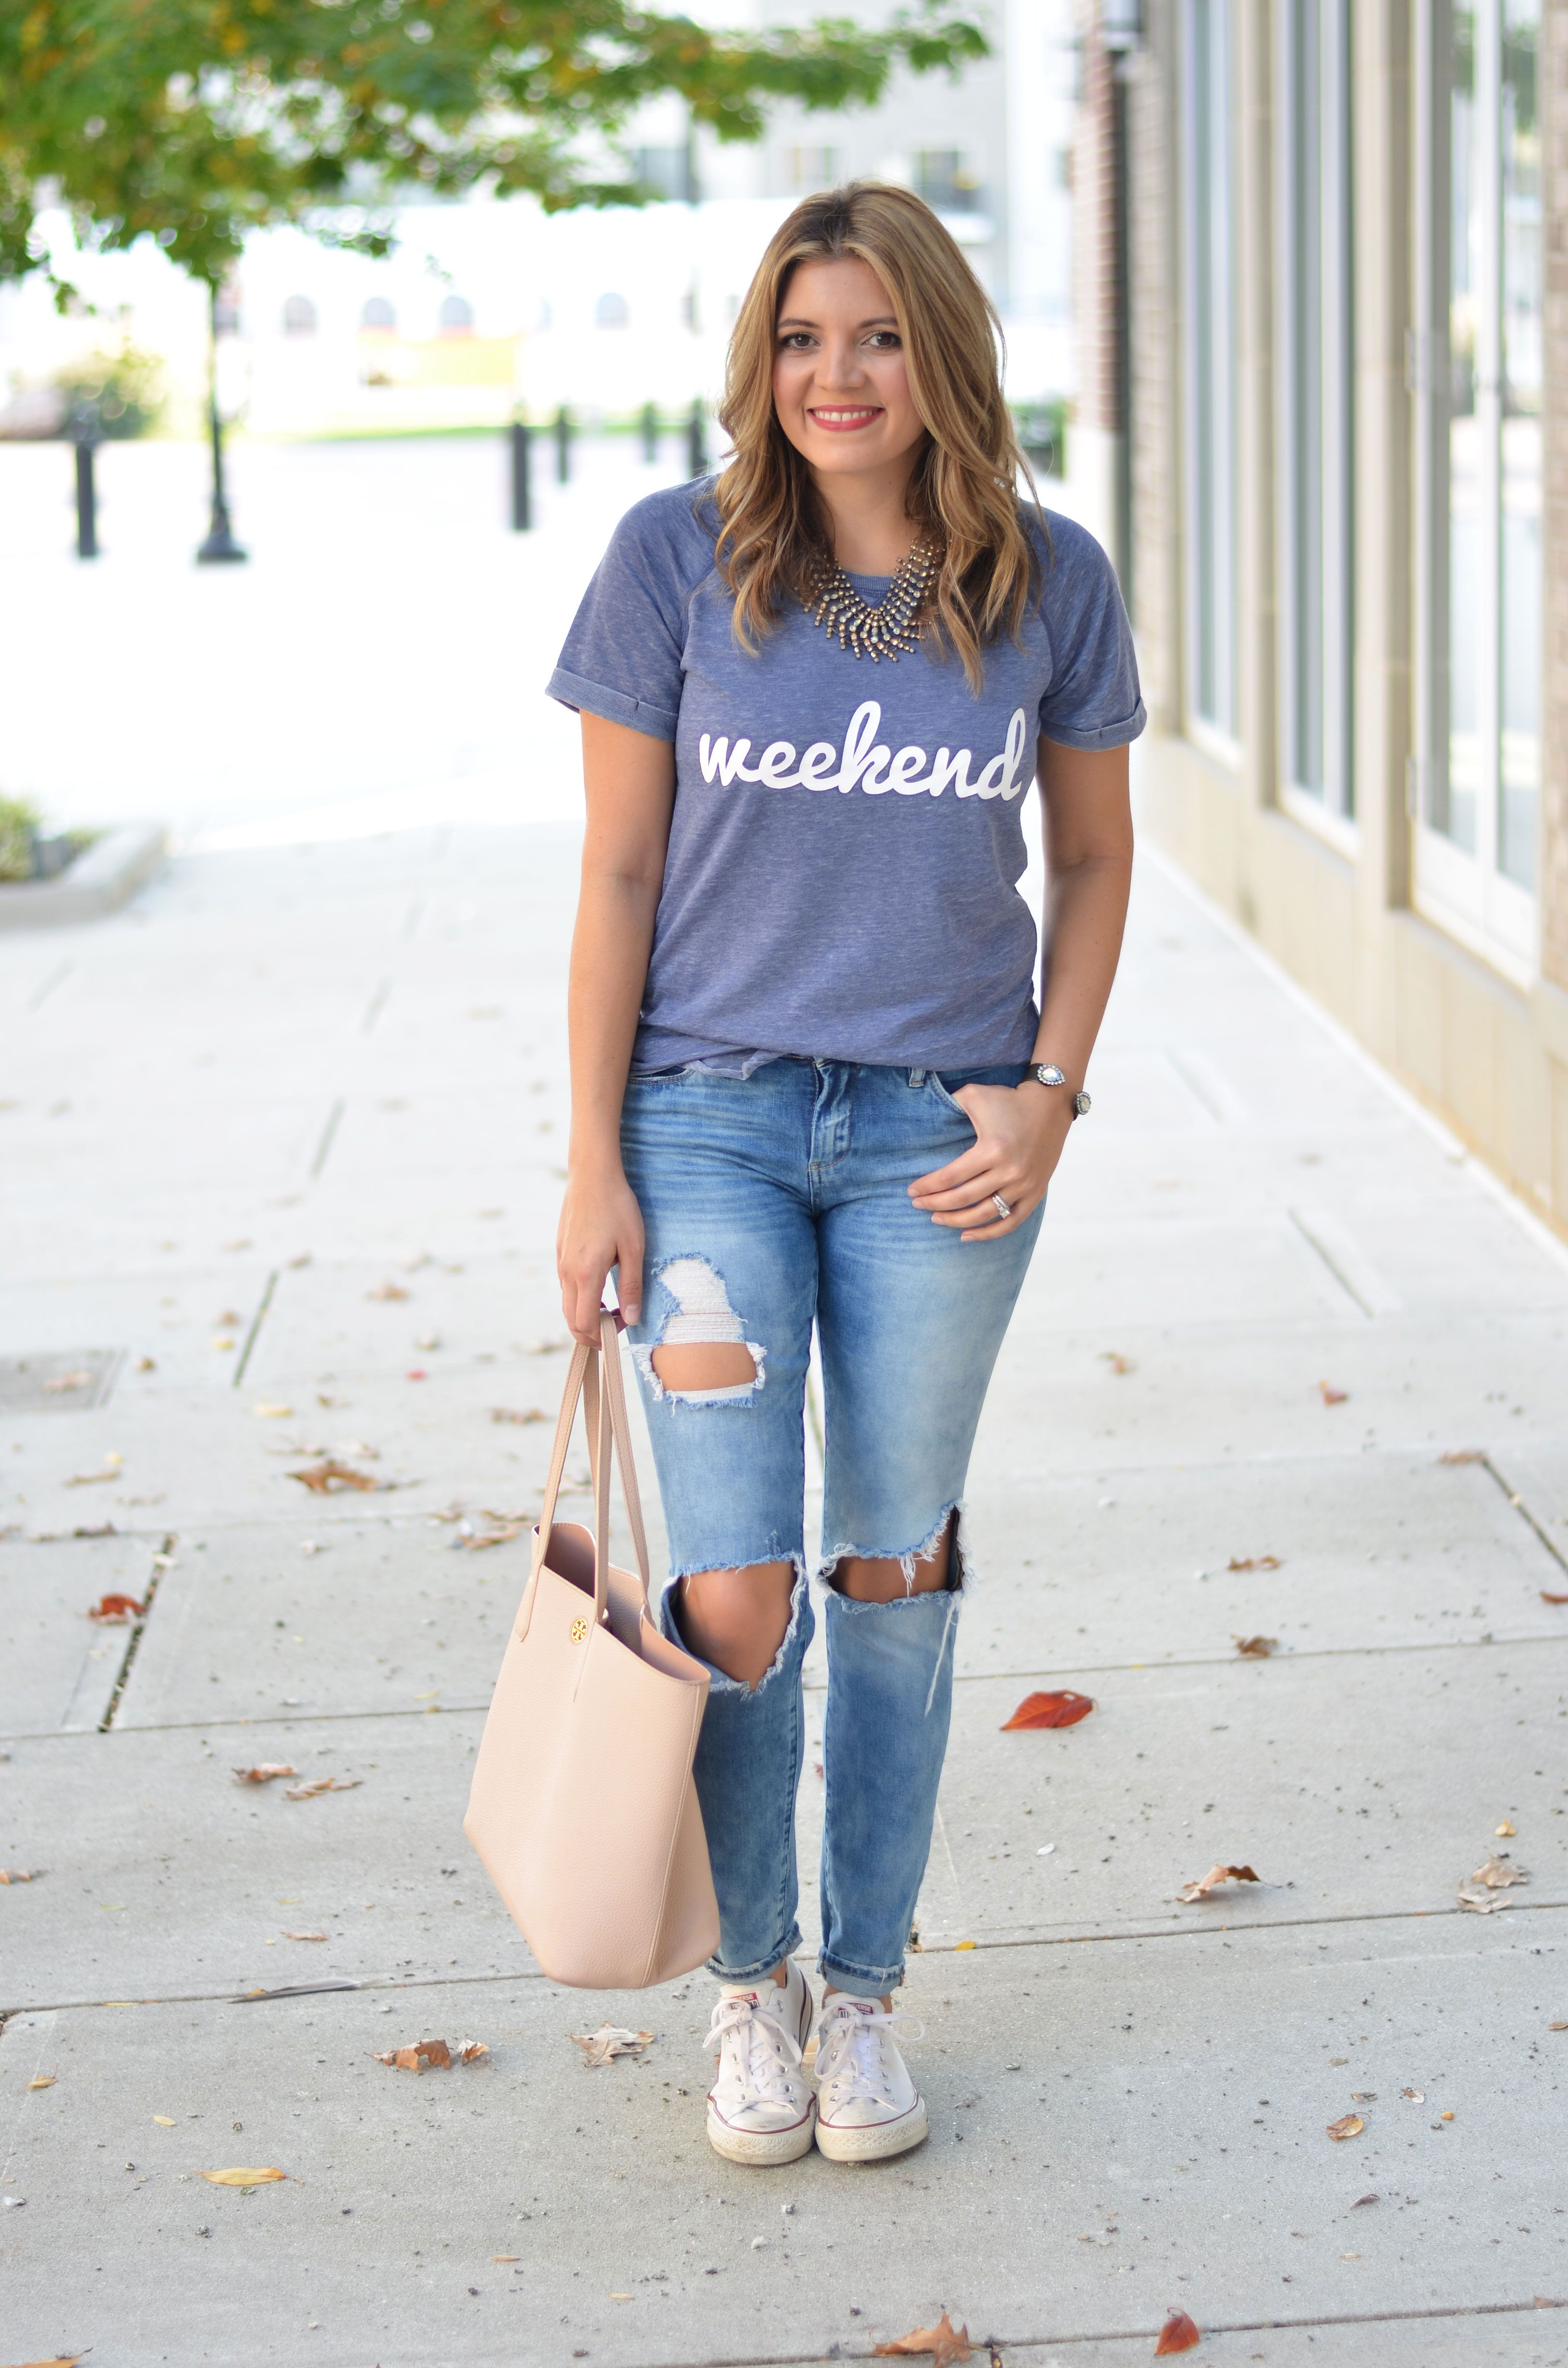 the best distressed jeans - blanknyc good vibes jeans with weekend graphic tee | www.bylaurenm.com